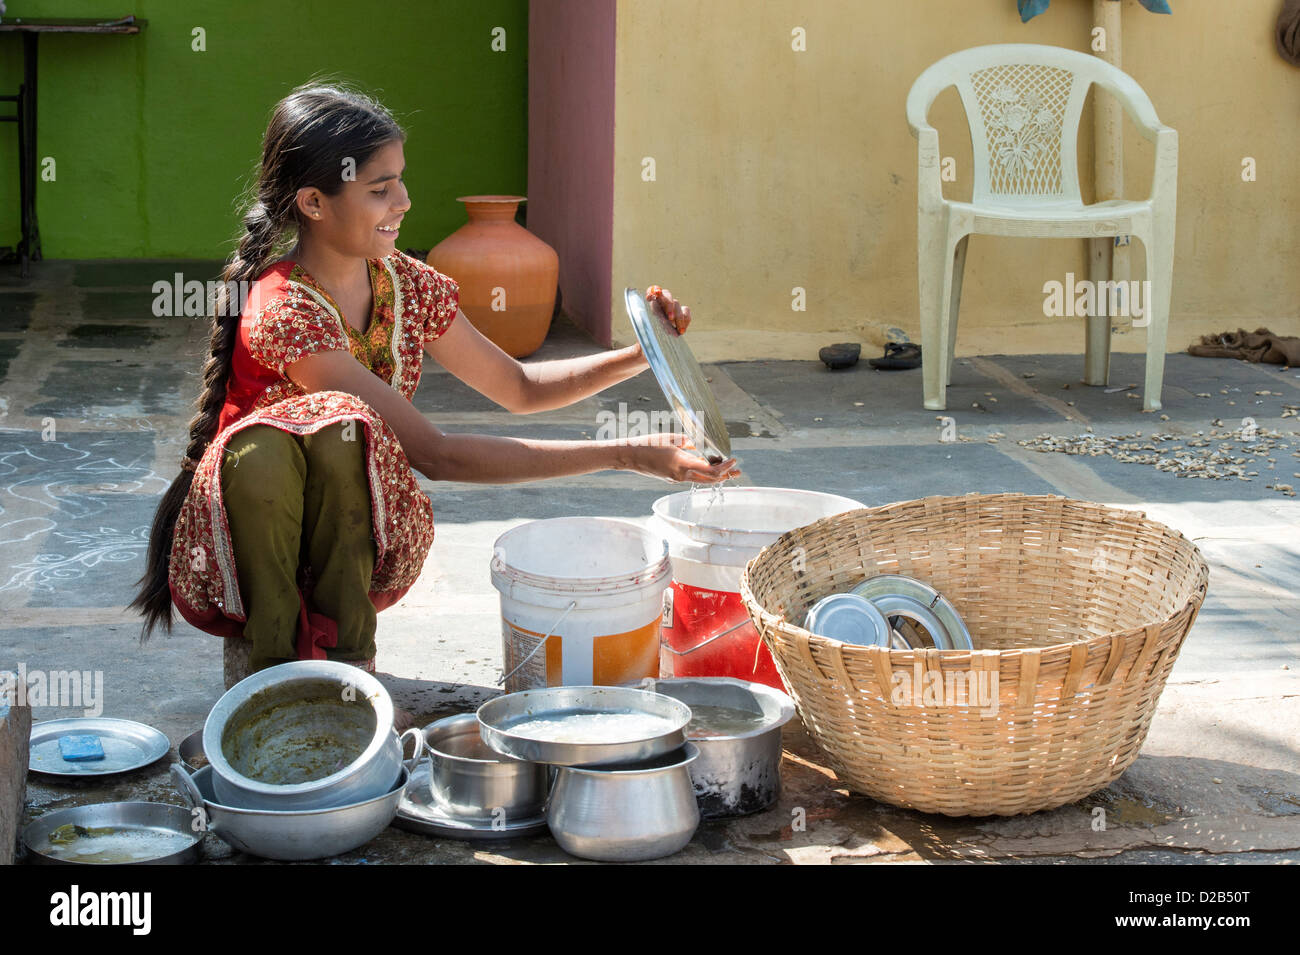 Teenage Indian girl washing dishes outside her rural indian village home. Andhra Pradesh, India - Stock Image